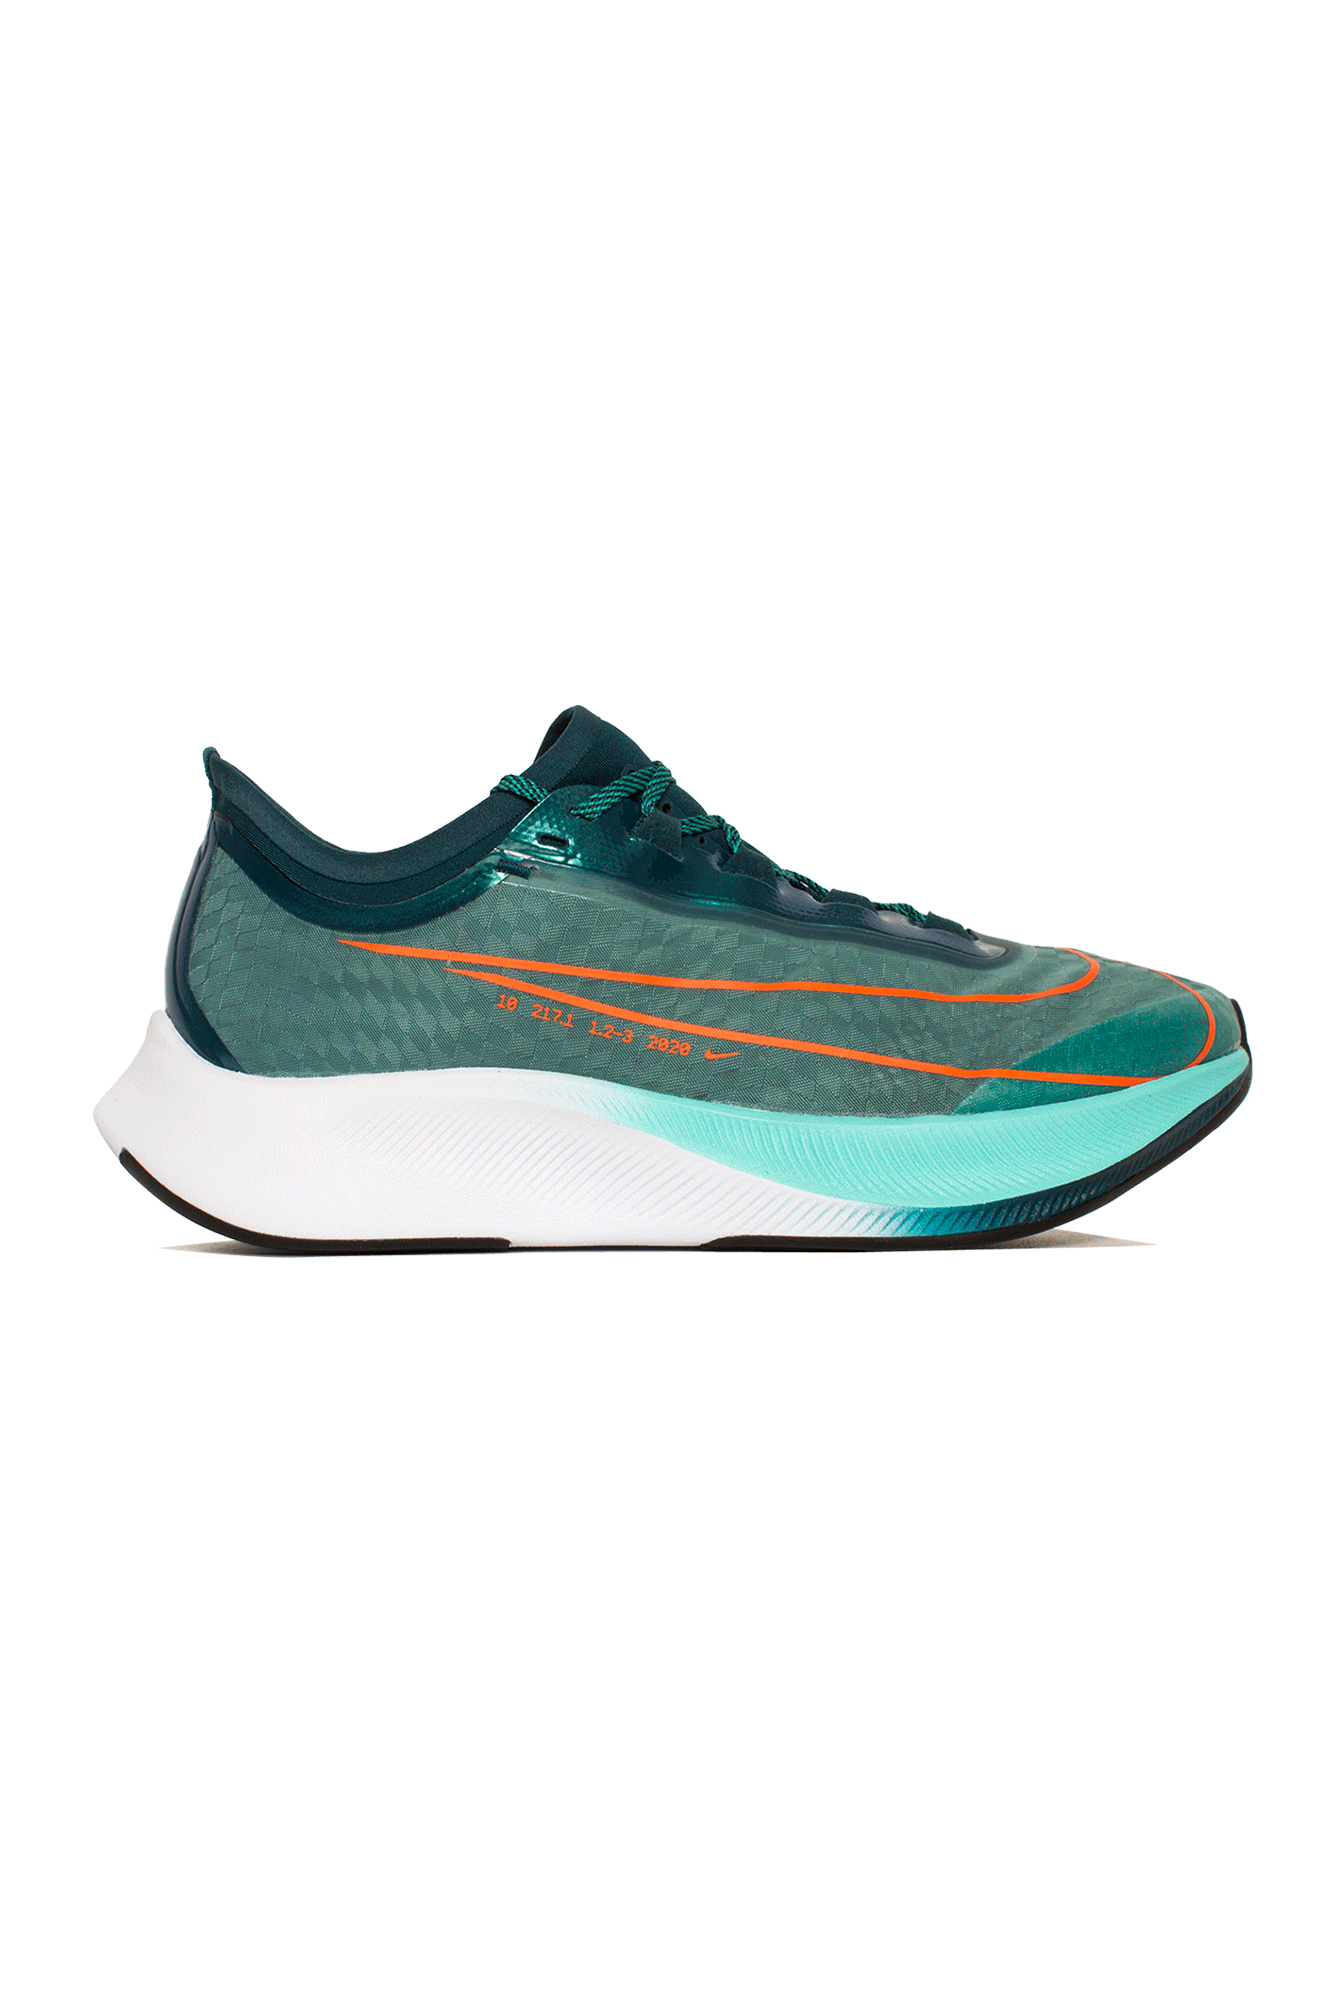 Zoom Fly 3 Prm Hkne Green